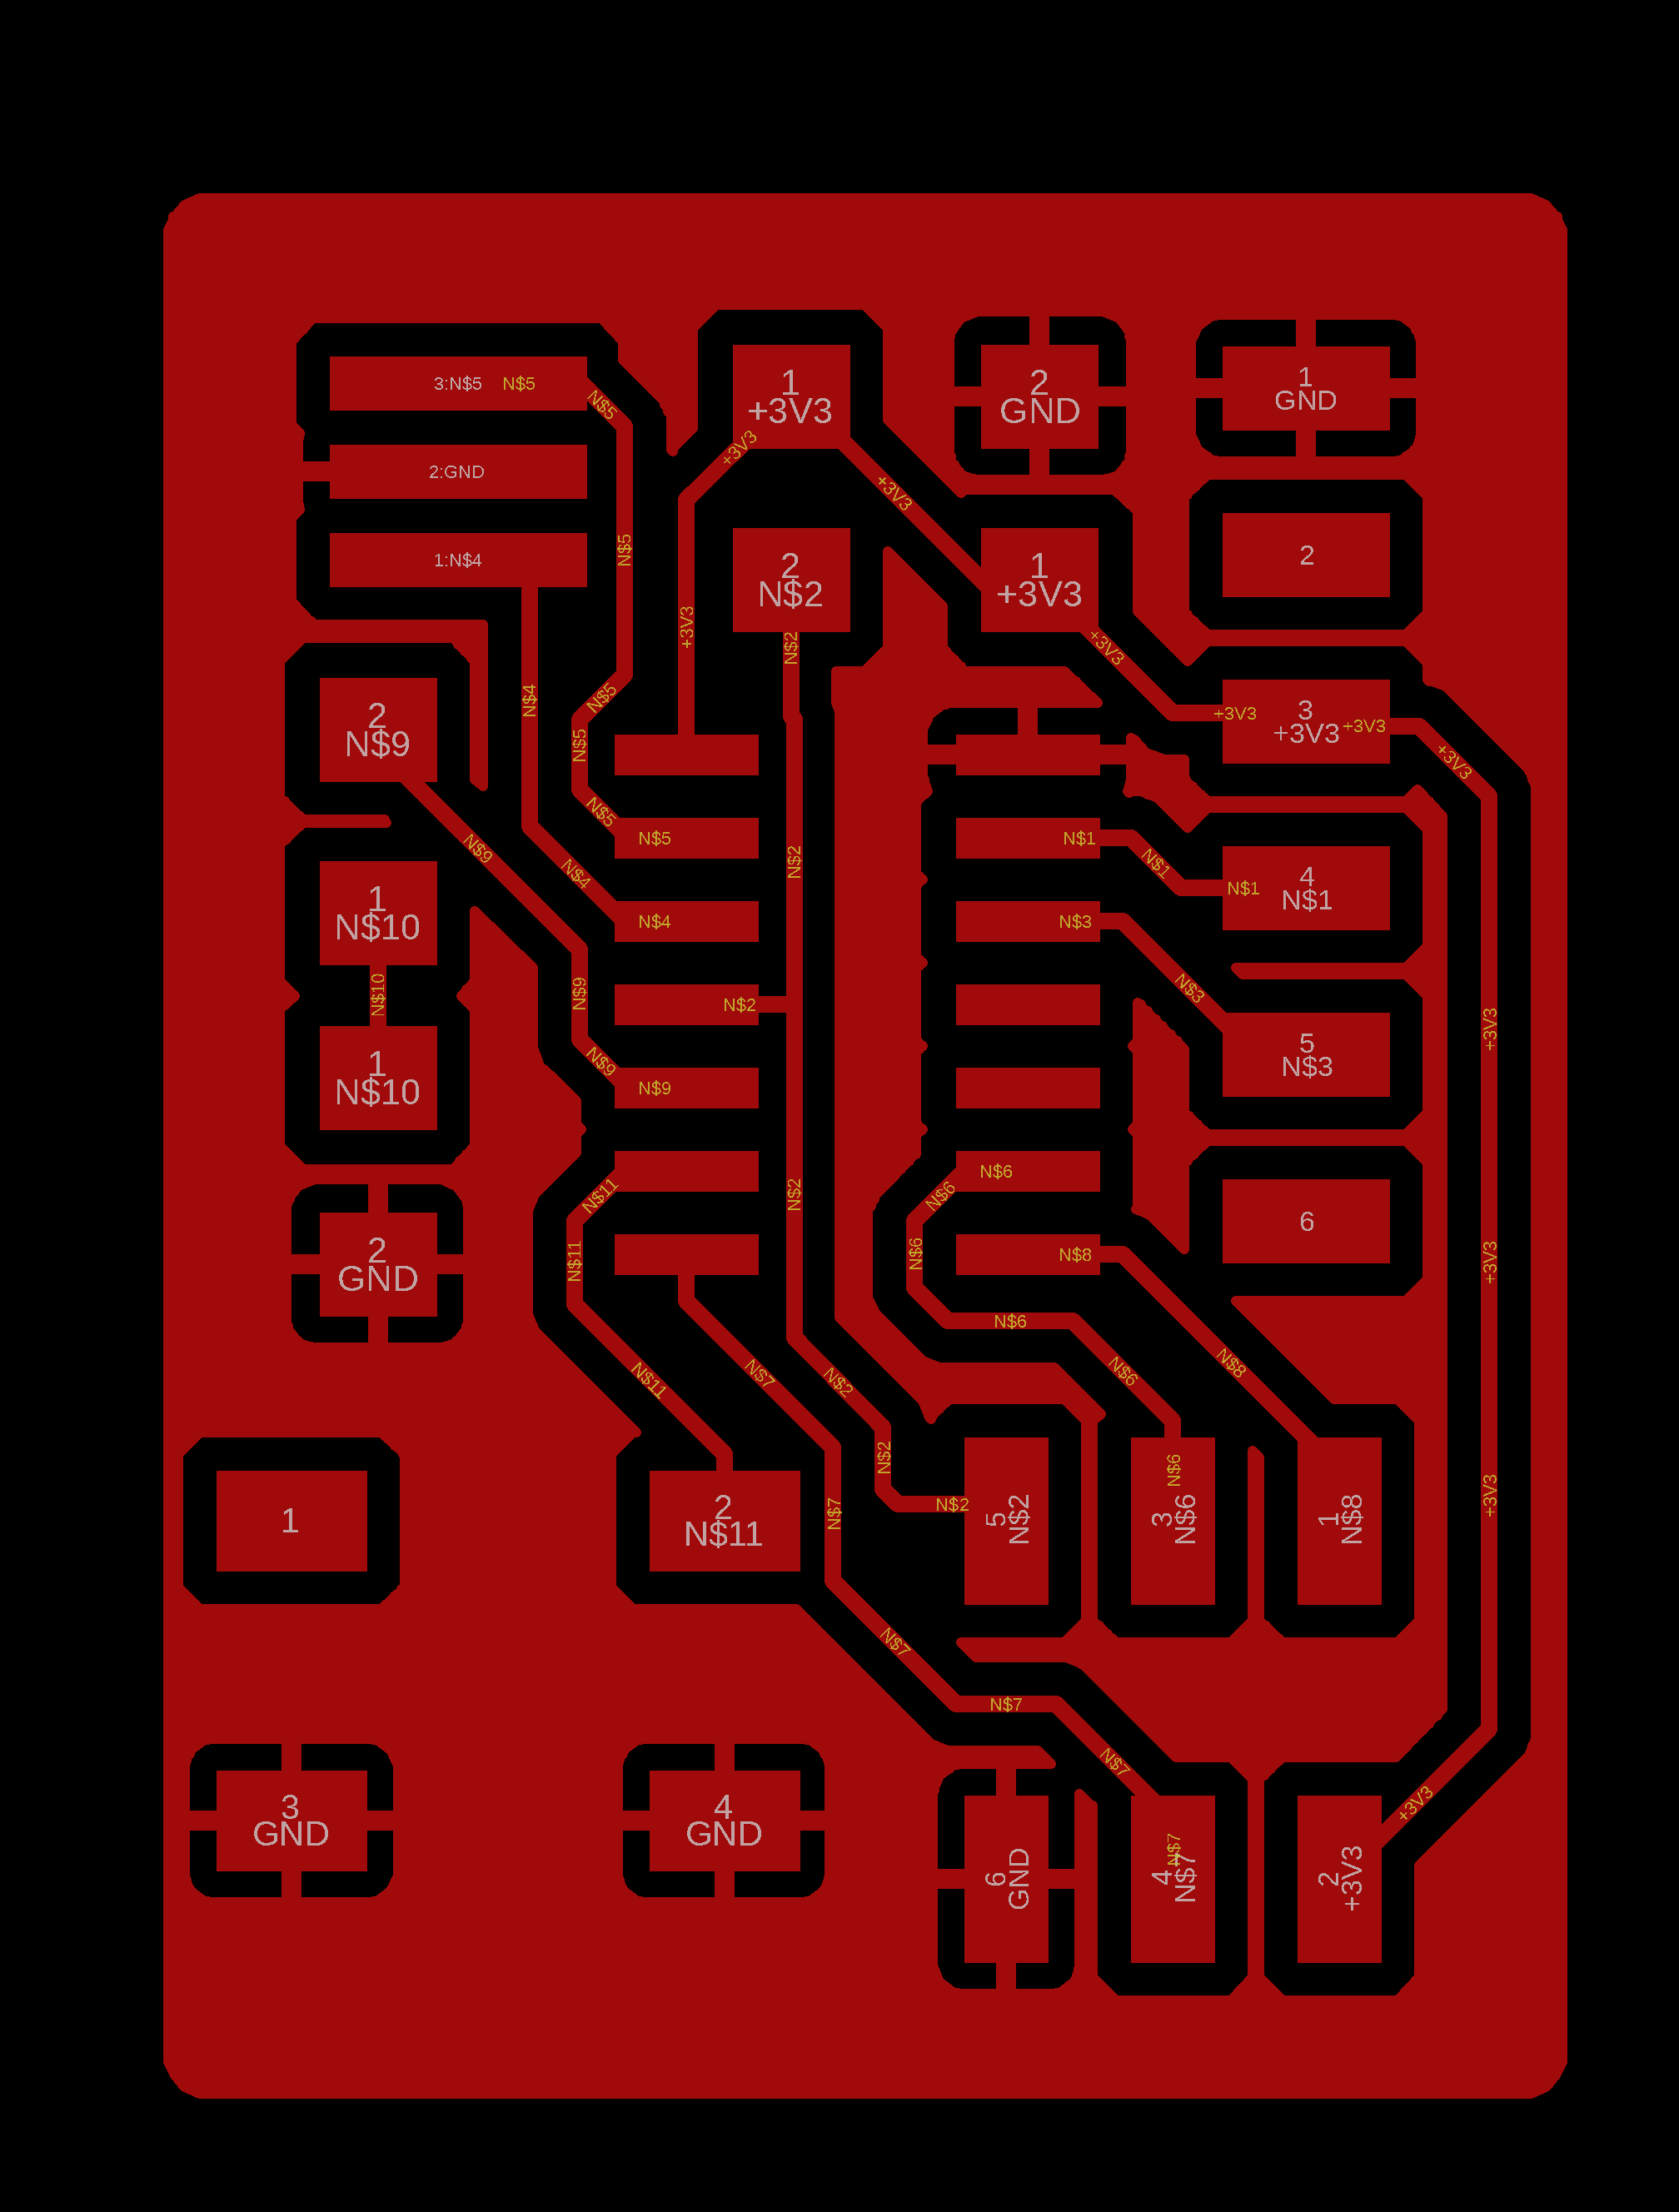 static/img/06_board.png